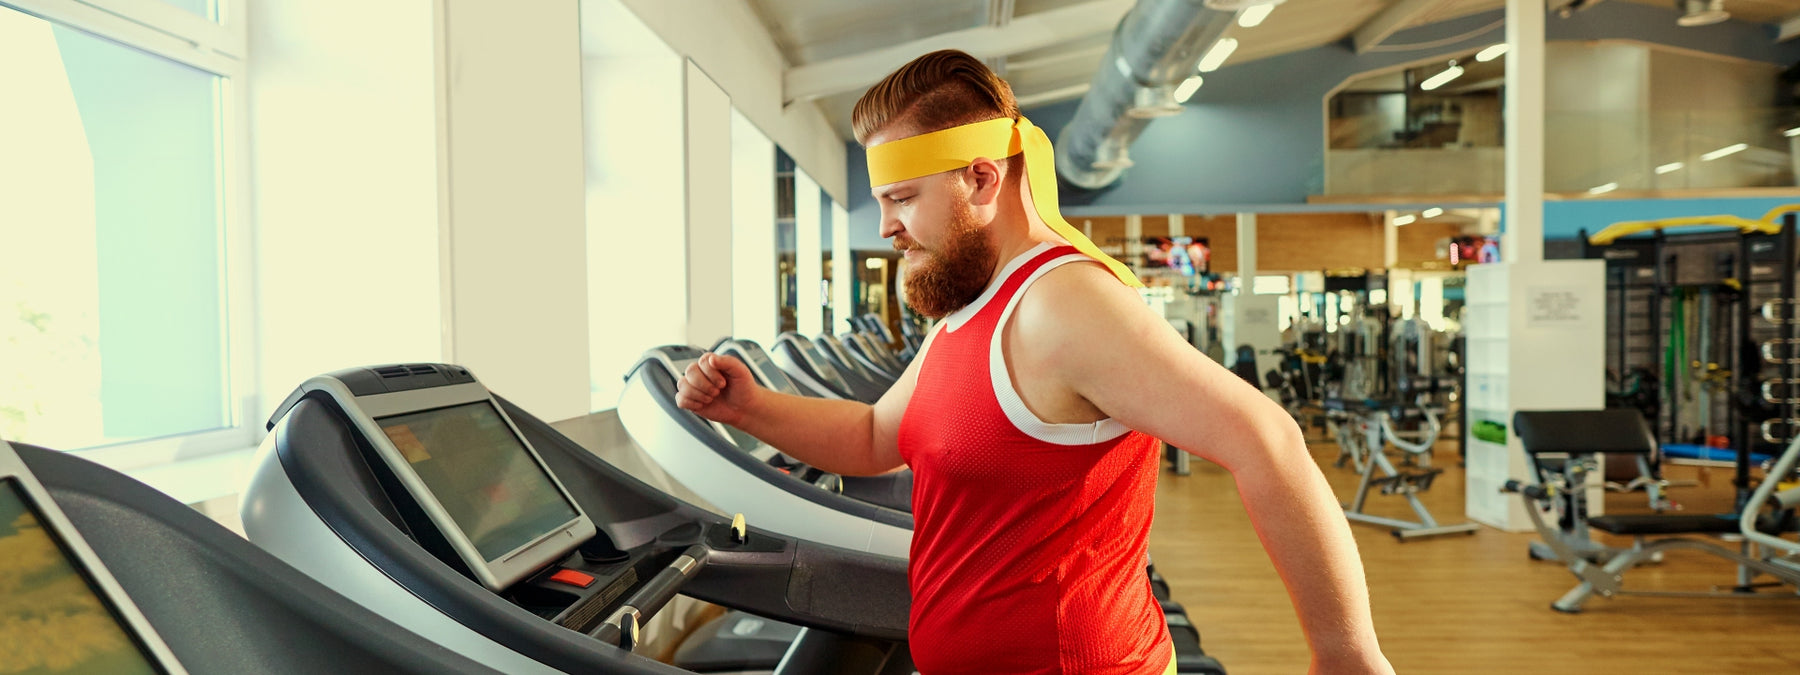 27 Fitness Terms a Gym Newbie Needs to Know